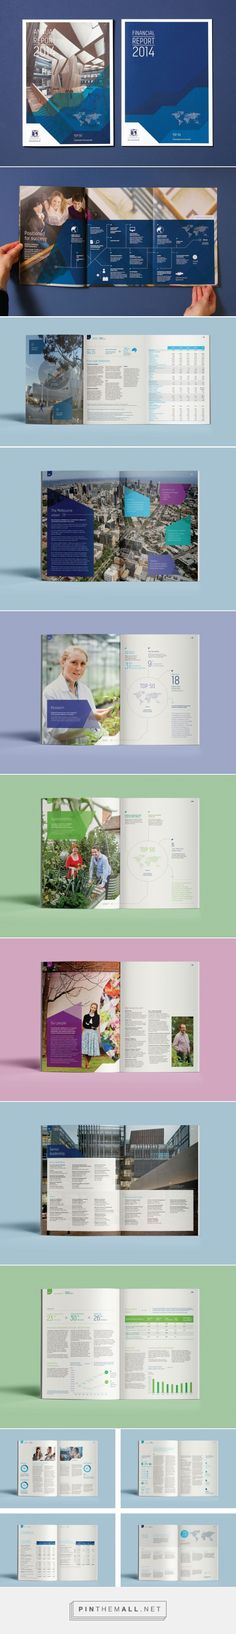 University of Melbourne Annual Report - Studio Binocular - created via https://pinthemall.net